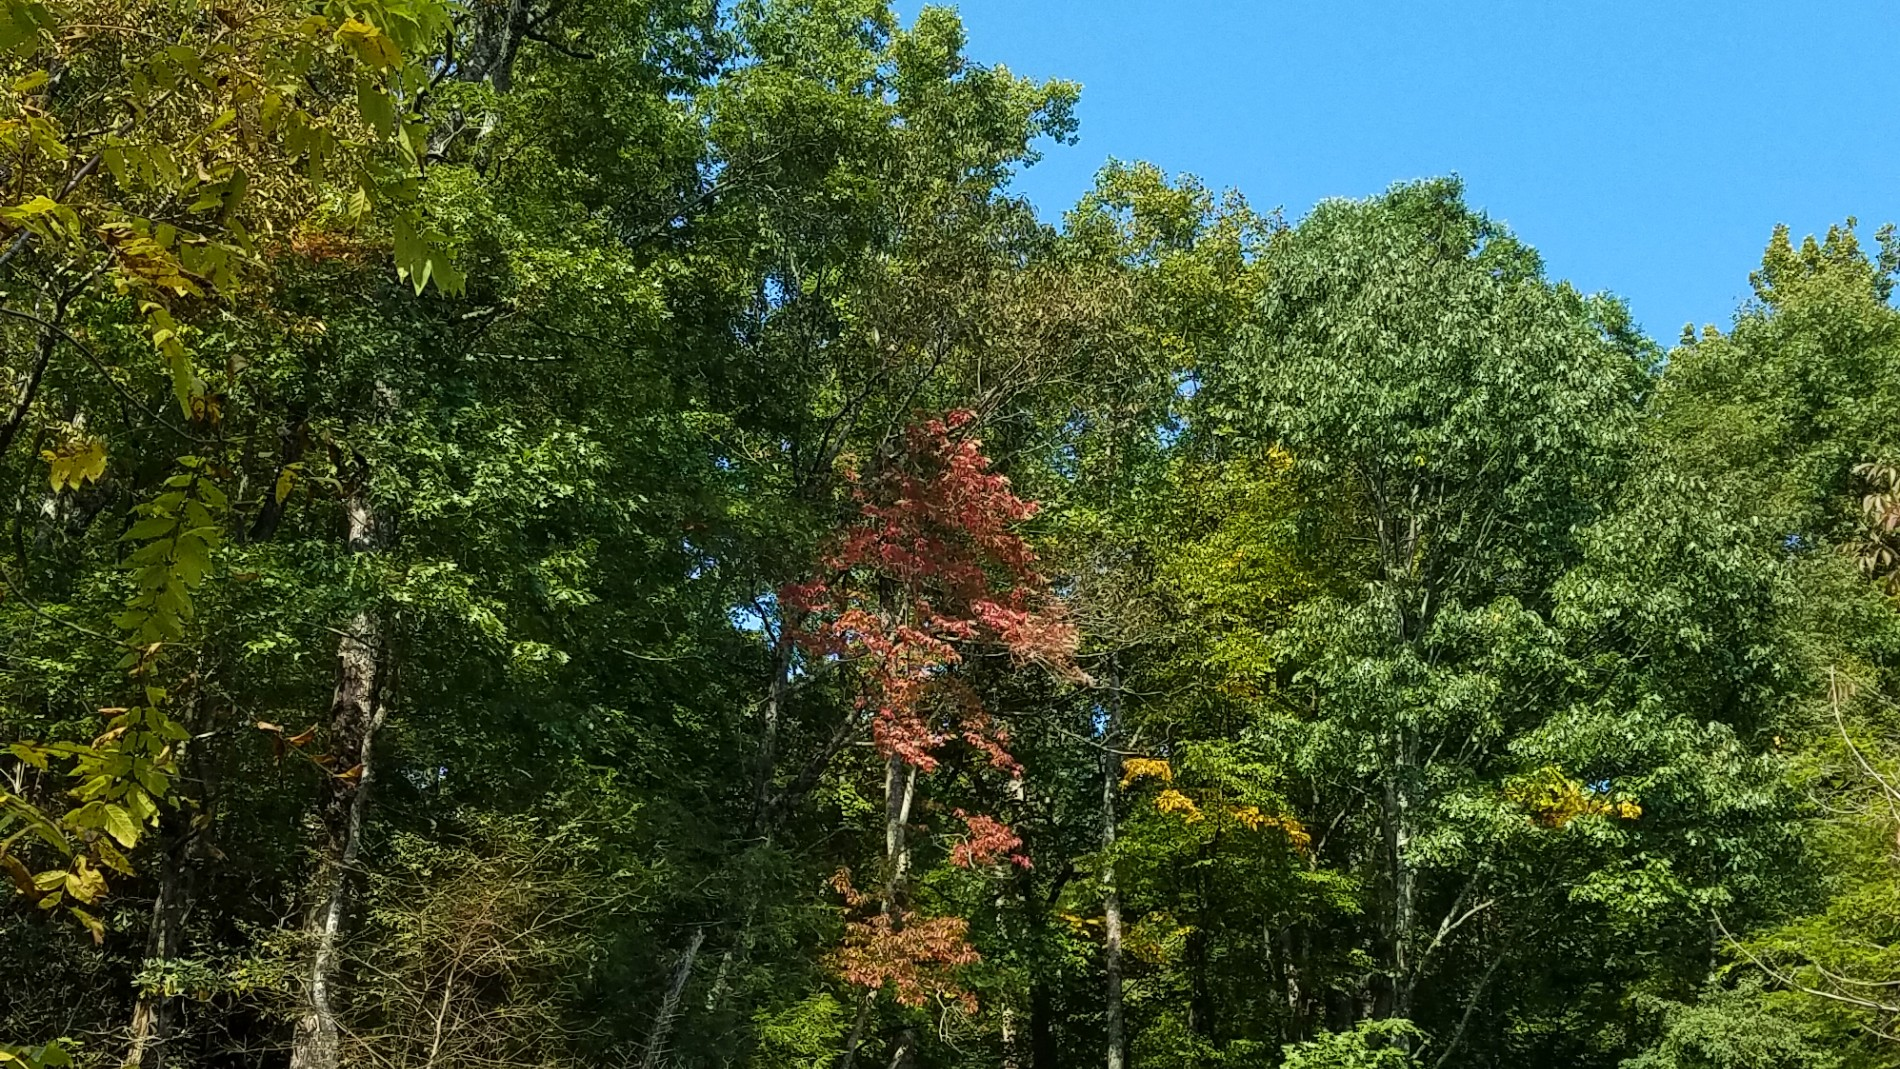 Tall trees full of leaves and a clear sky